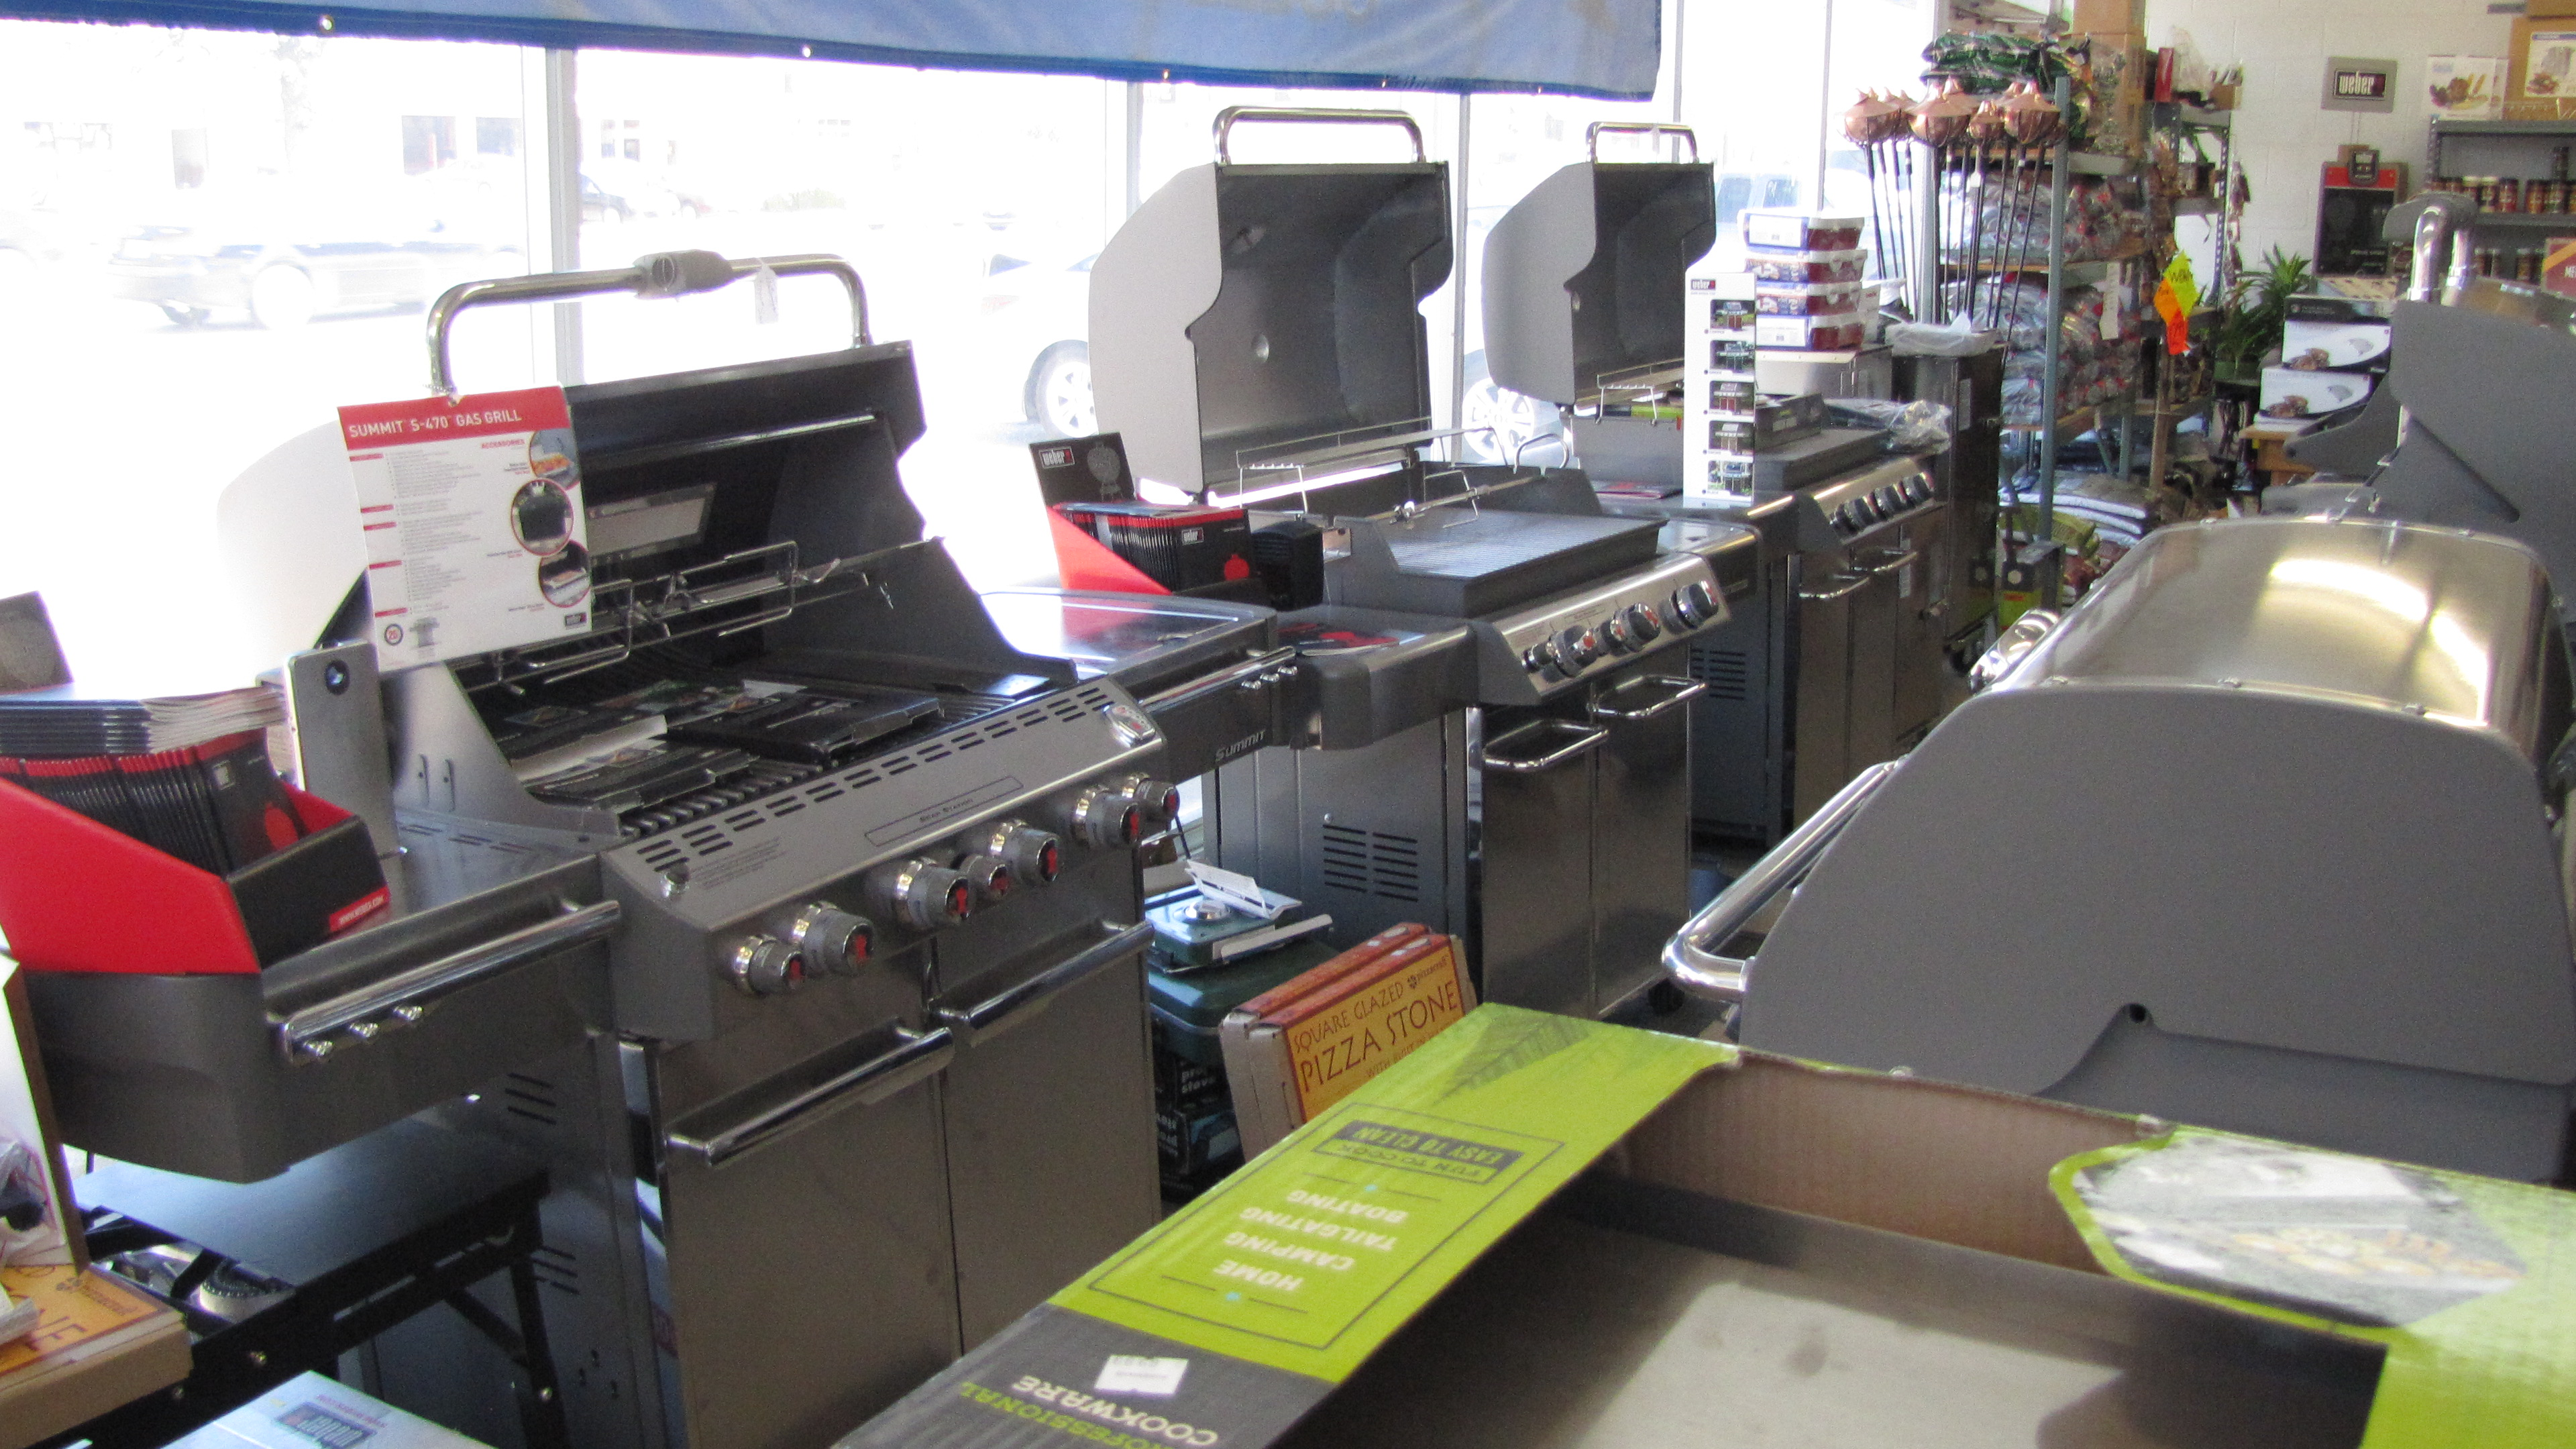 weu0027ve got weber grills at general grillers by grillers weber is the original innovator of the gas cooking grill system - Weber Gas Grills